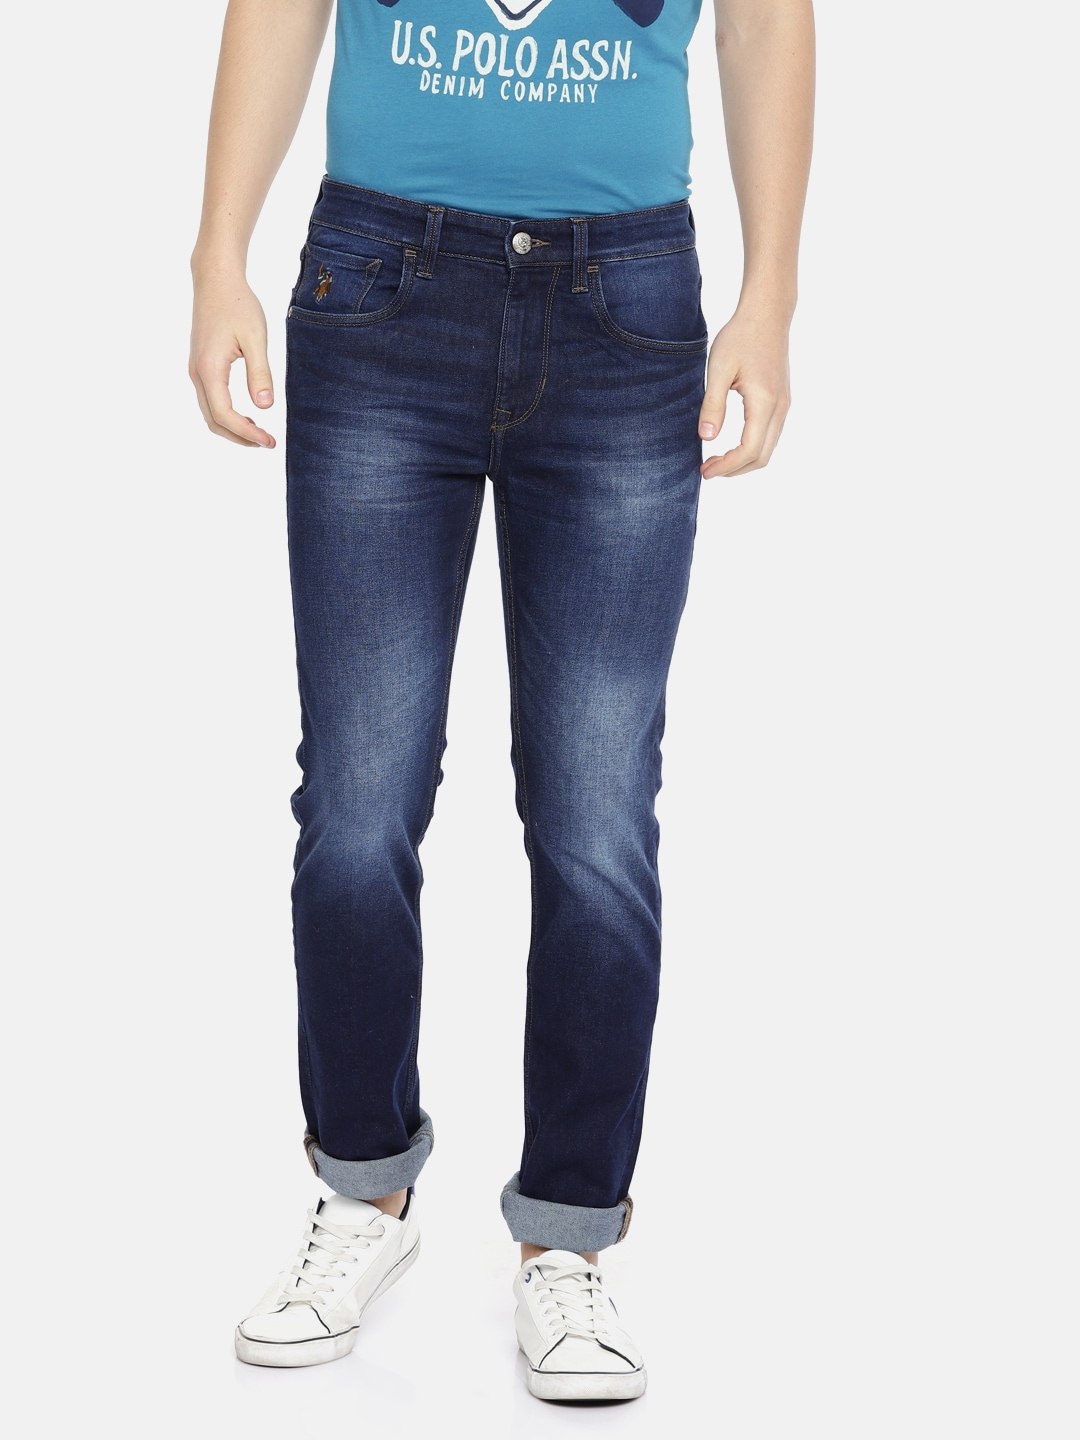 Jeans Rise Stretchable CoMen Skinny Blue U sPolo Mid Clean AssnDenim Look Fit mn0N8w